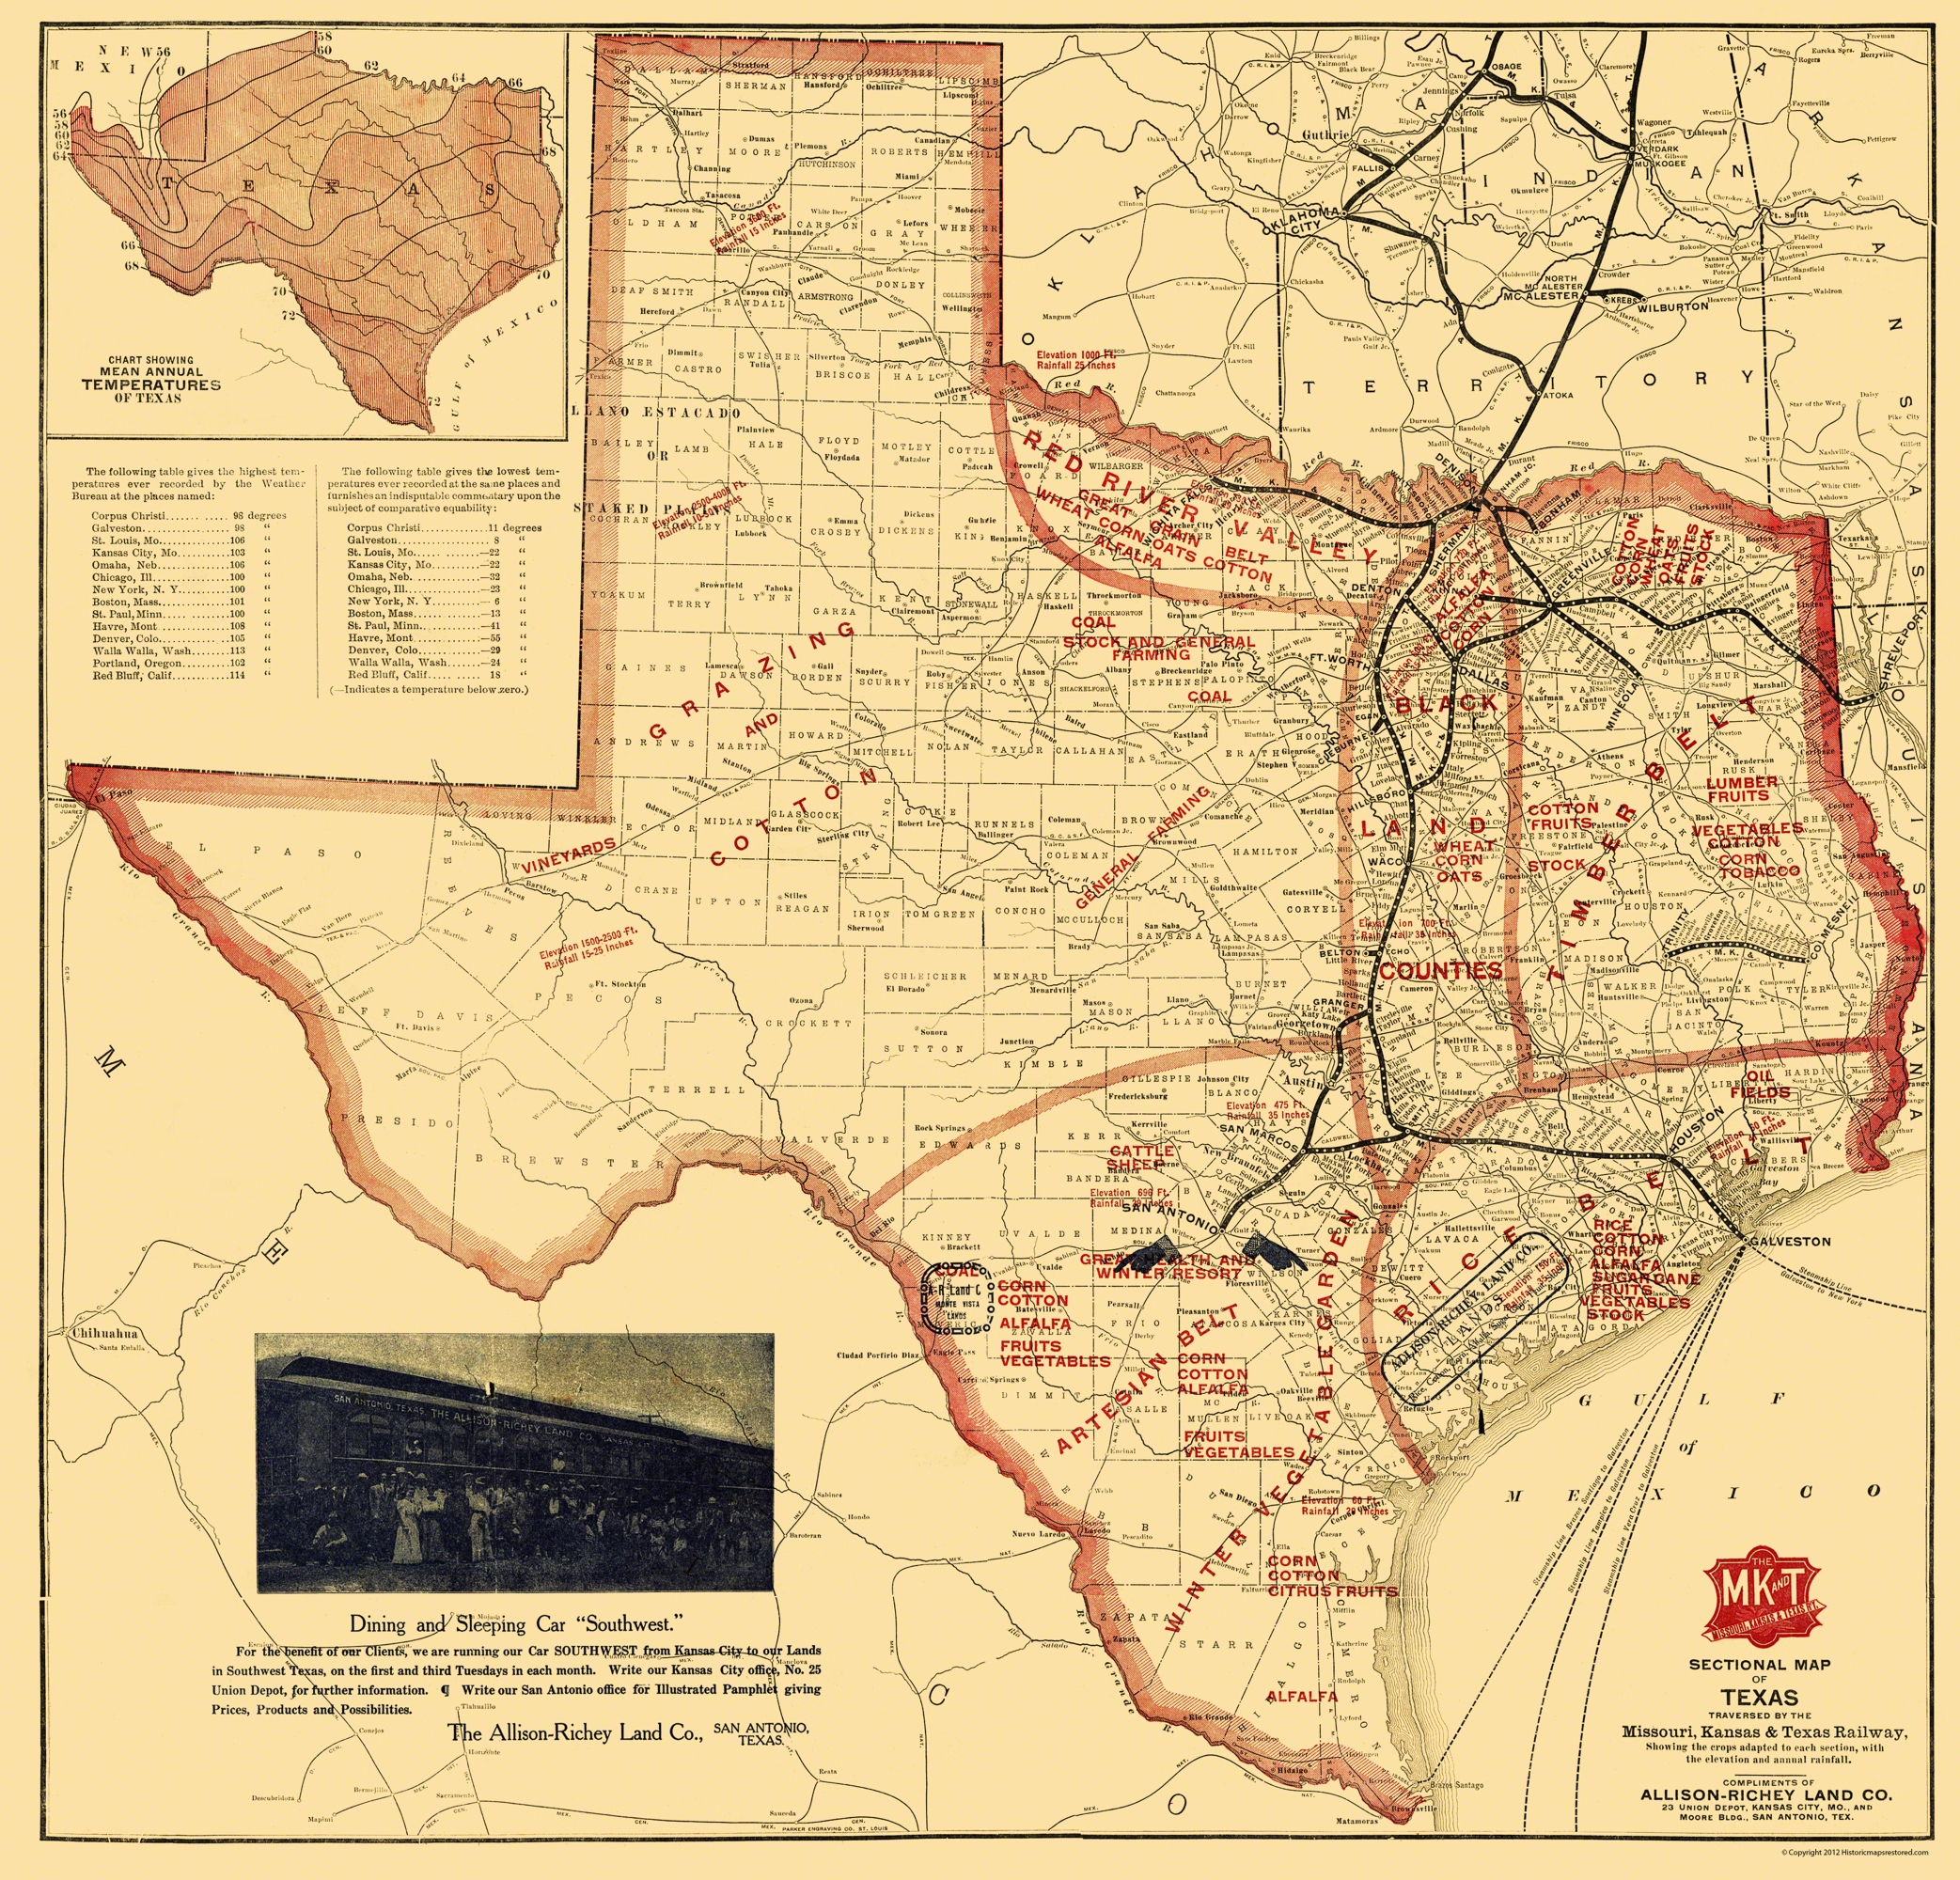 Old Railroad Map - Missouri, Kansas and Texas Railroad - Parker 1907 on map of twitty texas, map of hondo texas, map of sanderson texas, map of mason county texas, map of richardson texas, map of camp wood texas, map of rancho viejo texas, map of real county texas, map of meridian texas, map of tarrant county texas, map of mcallen texas, map of yancey texas, map of redwater texas, map of weatherford texas, map of runge texas, map of langtry texas, map of taylor texas, map of sulphur springs texas, map of pyote texas, map of the hill country texas,